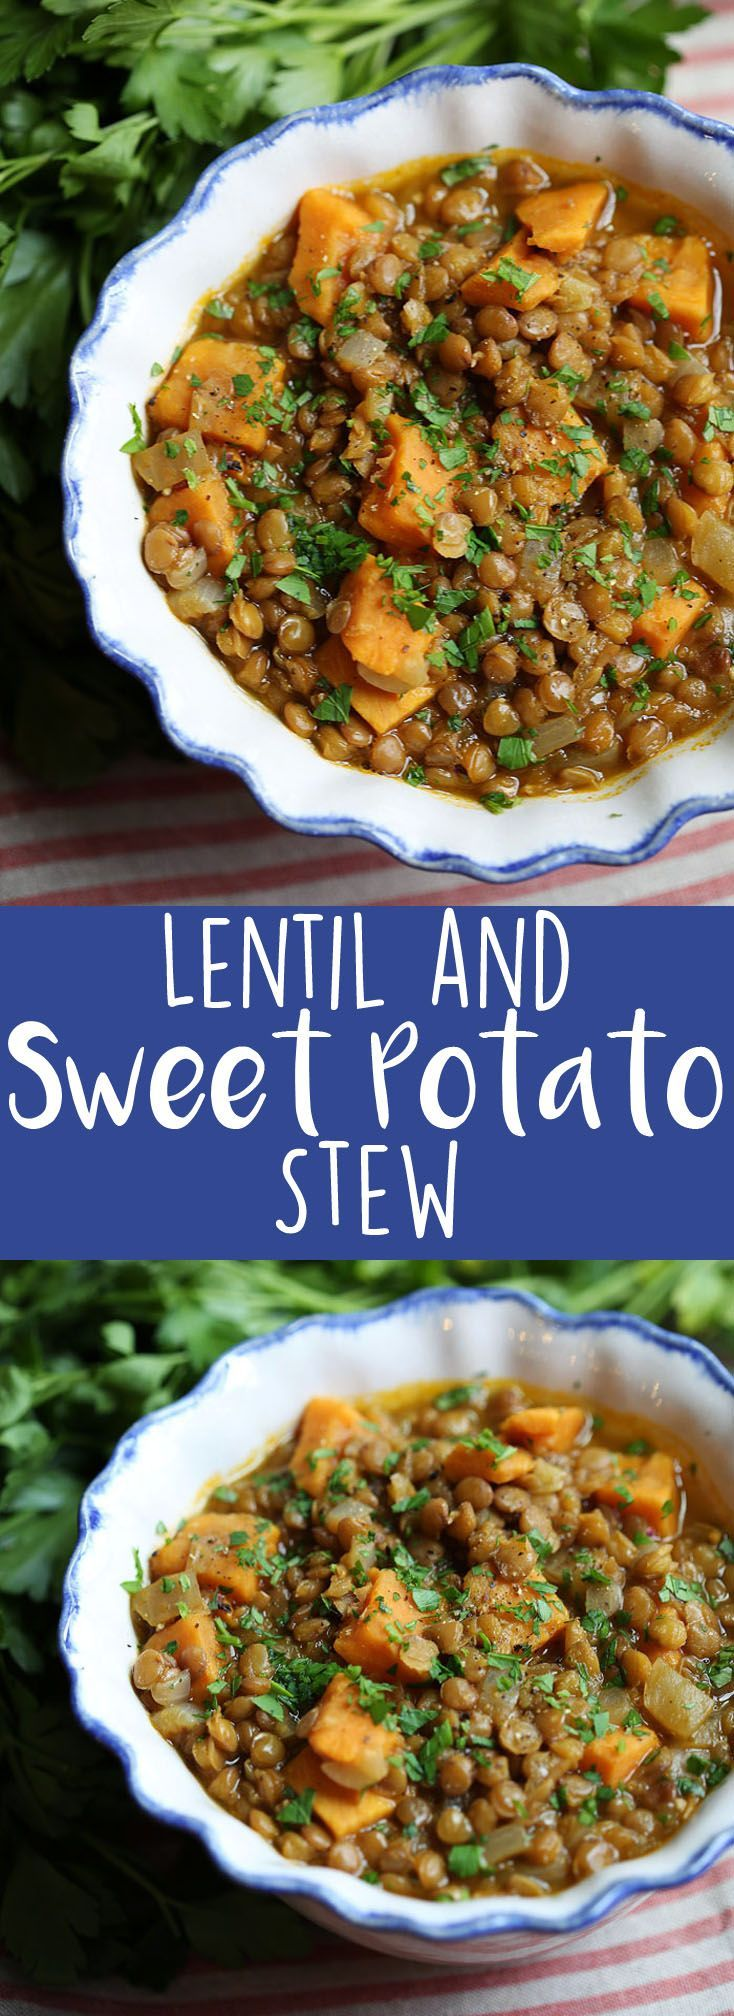 Lentil and Sweet Potato Stew | Eat Yourself Skinny                                                                                                                                                     More